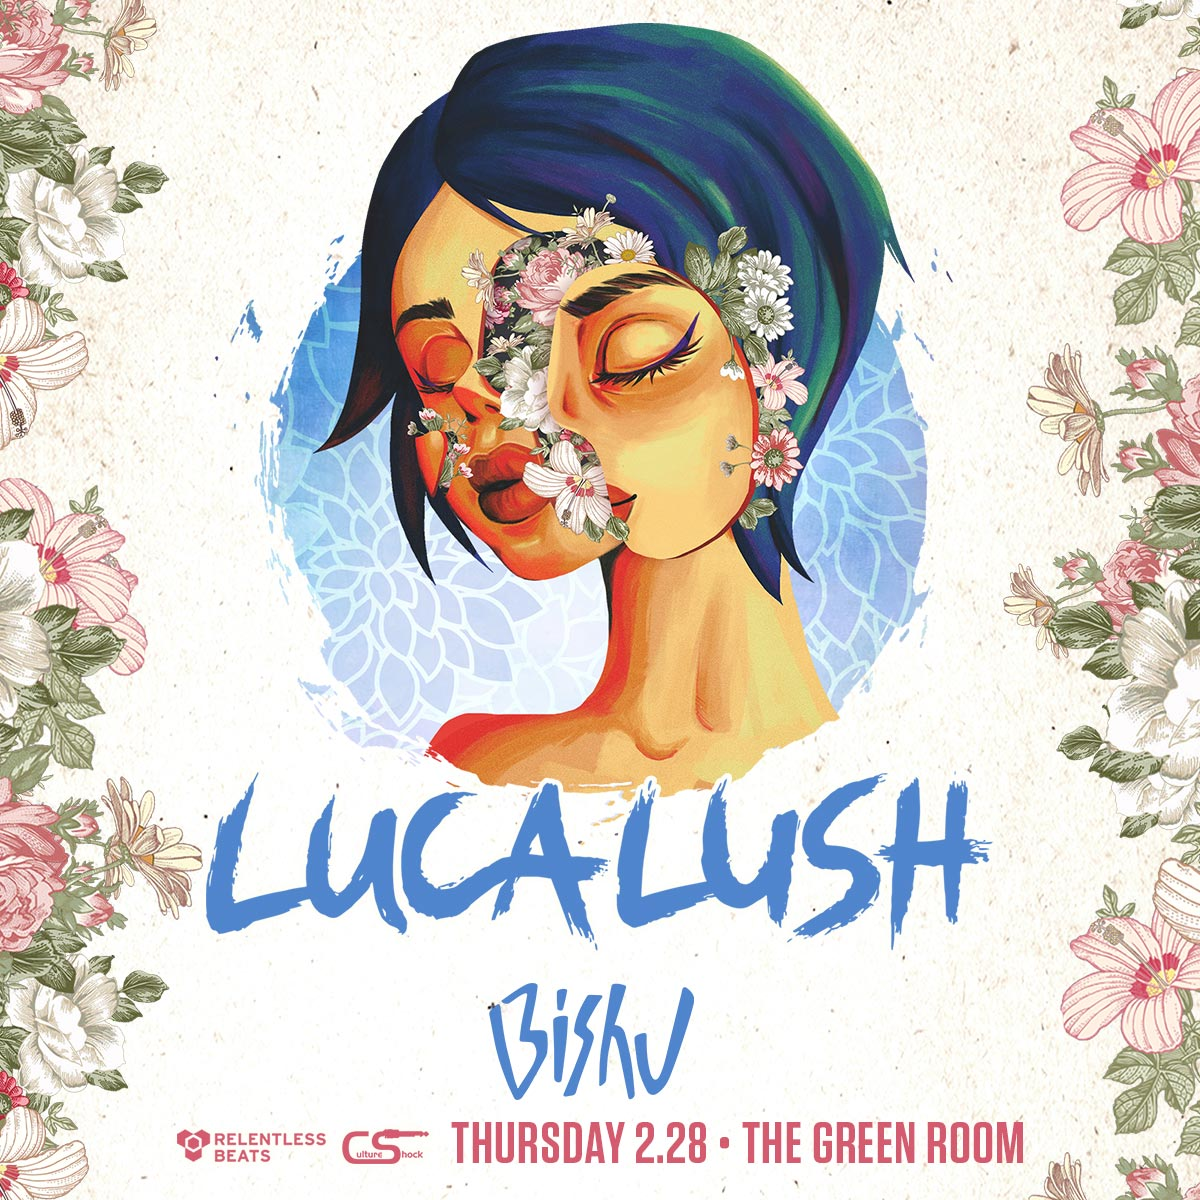 Flyer for Luca Lush